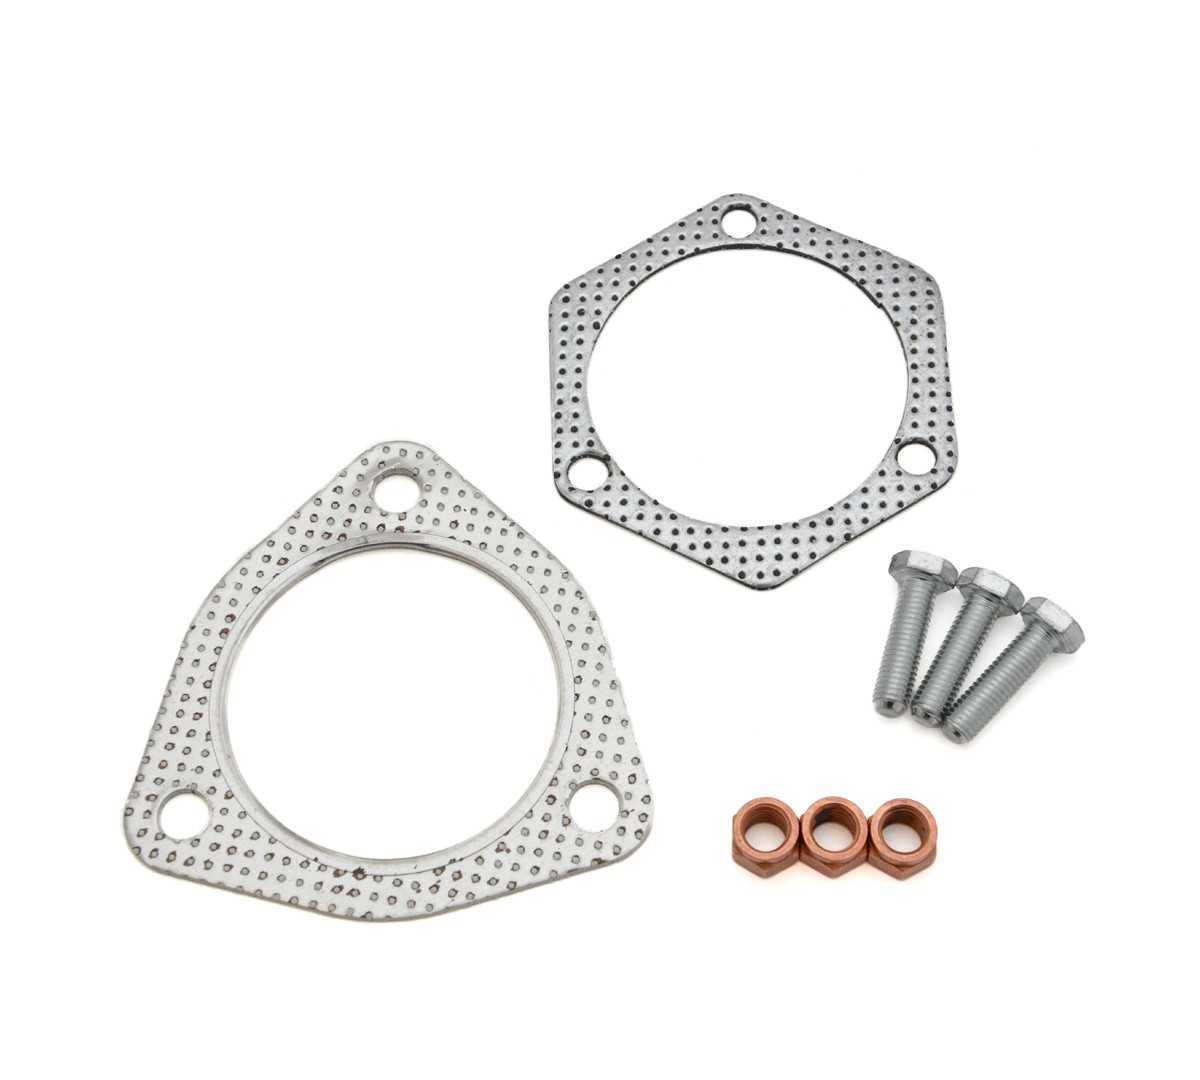 Gasket Kit K03 K04 Turbo 1 8t Longitudinal Applications